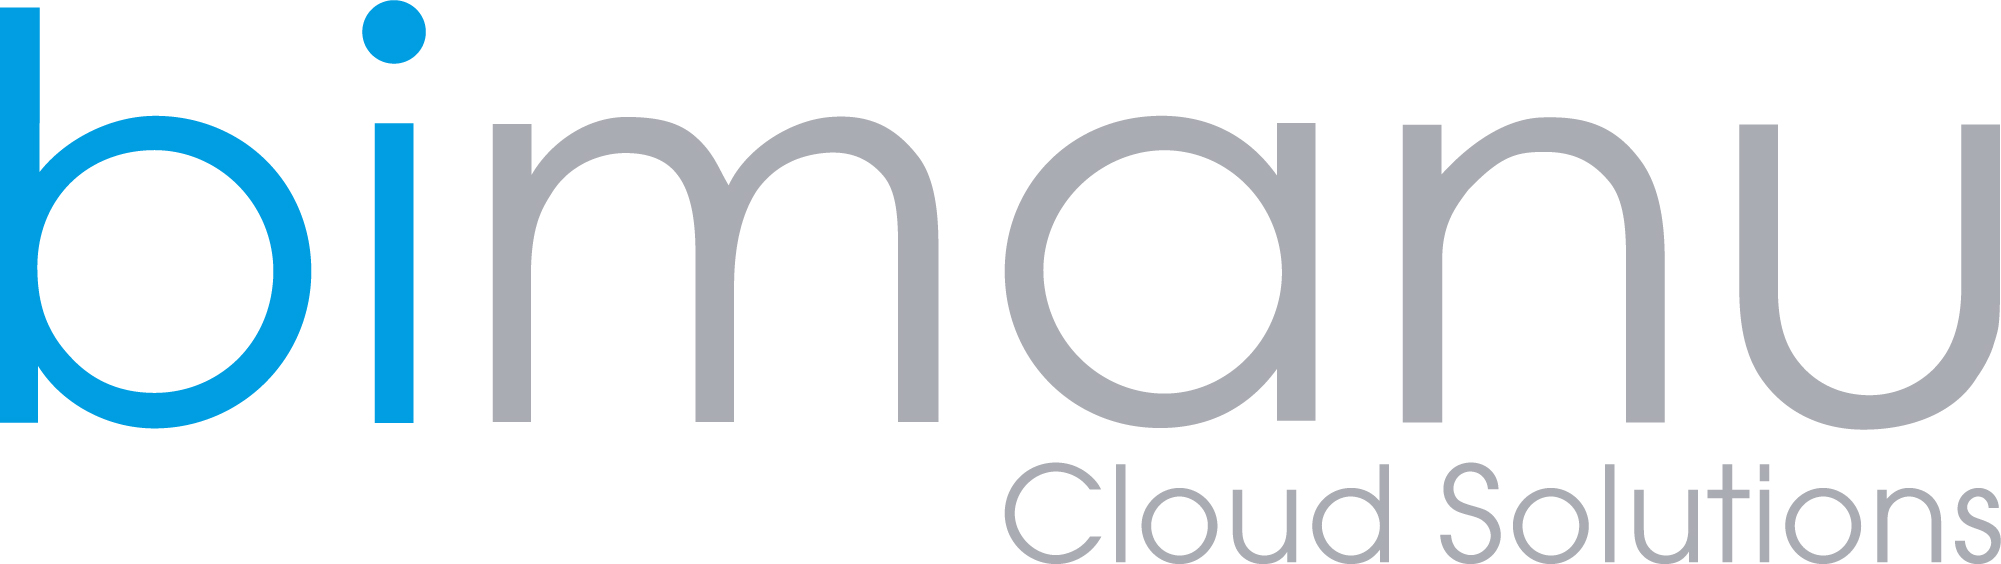 20190326_abe_Logo_bimanu_cloud_Solutions_blau